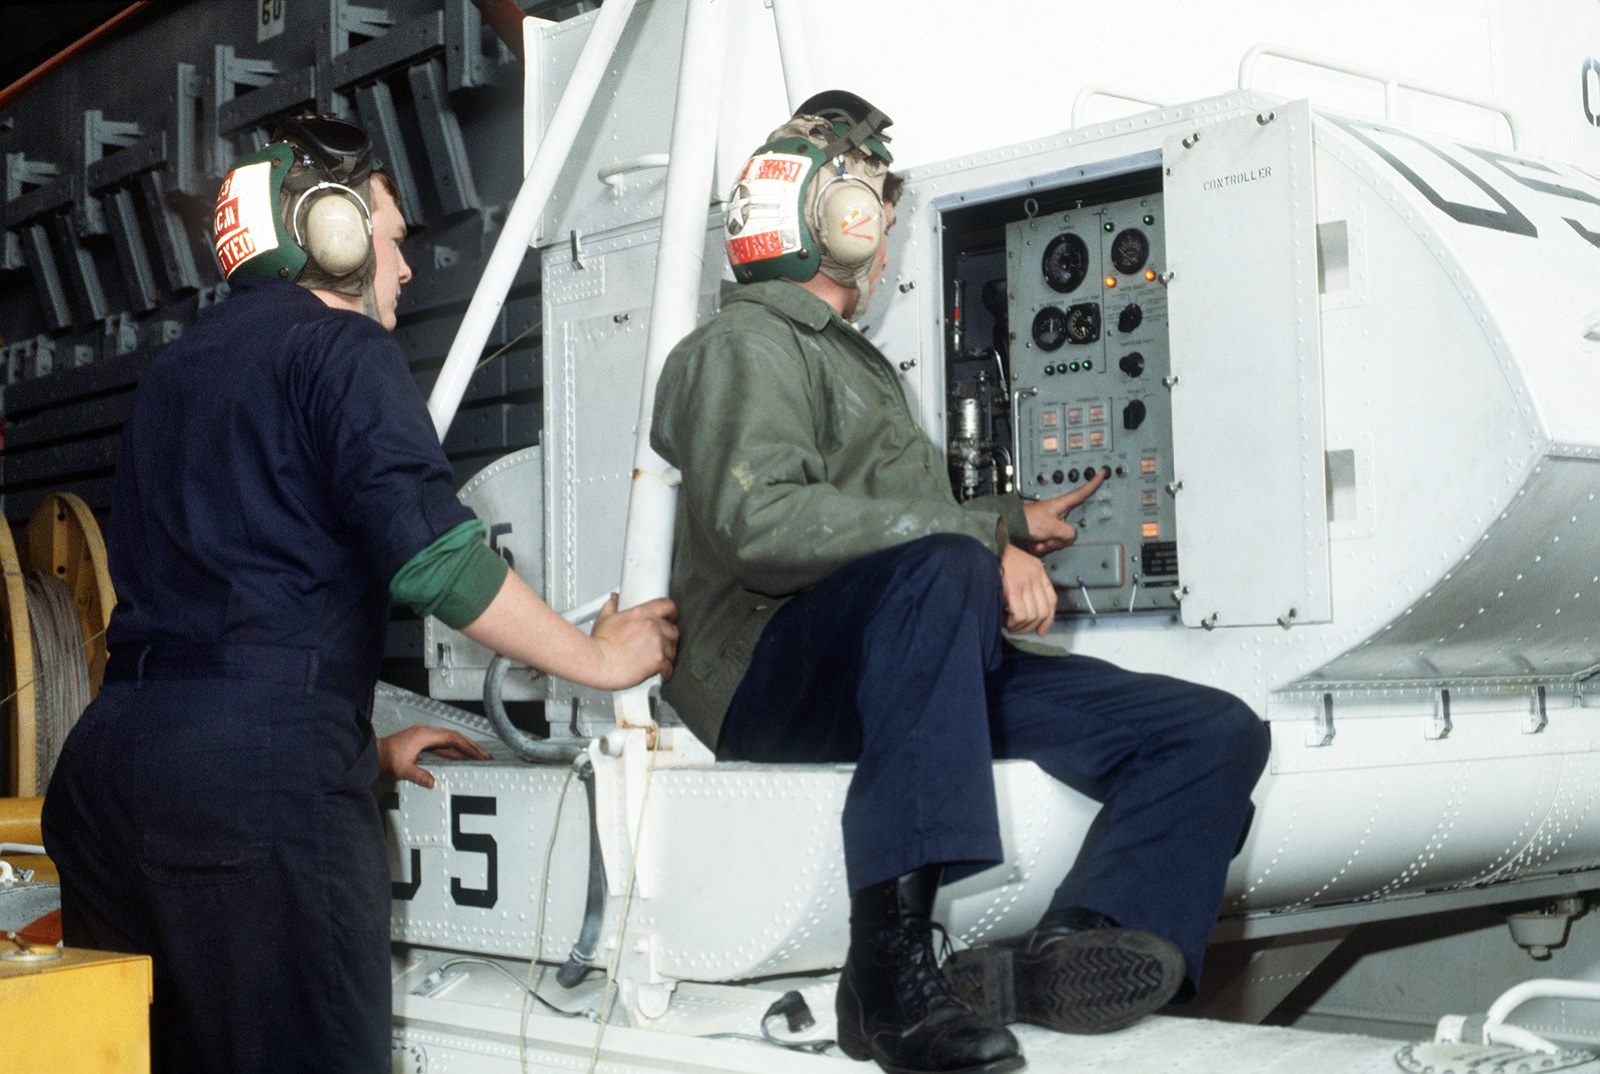 Members of Helicopter Mine Countermeasures Squadron 15 (HM-15) service a Mark 105 hydrofoil minesweeping sled in the well deck of the amphibious transport dock USS DULUTH (LPD-6). The DULUTH is acting as a platform for HM-15 operations during the joint U.S. - Canadian fleet exercise MARCOT '93